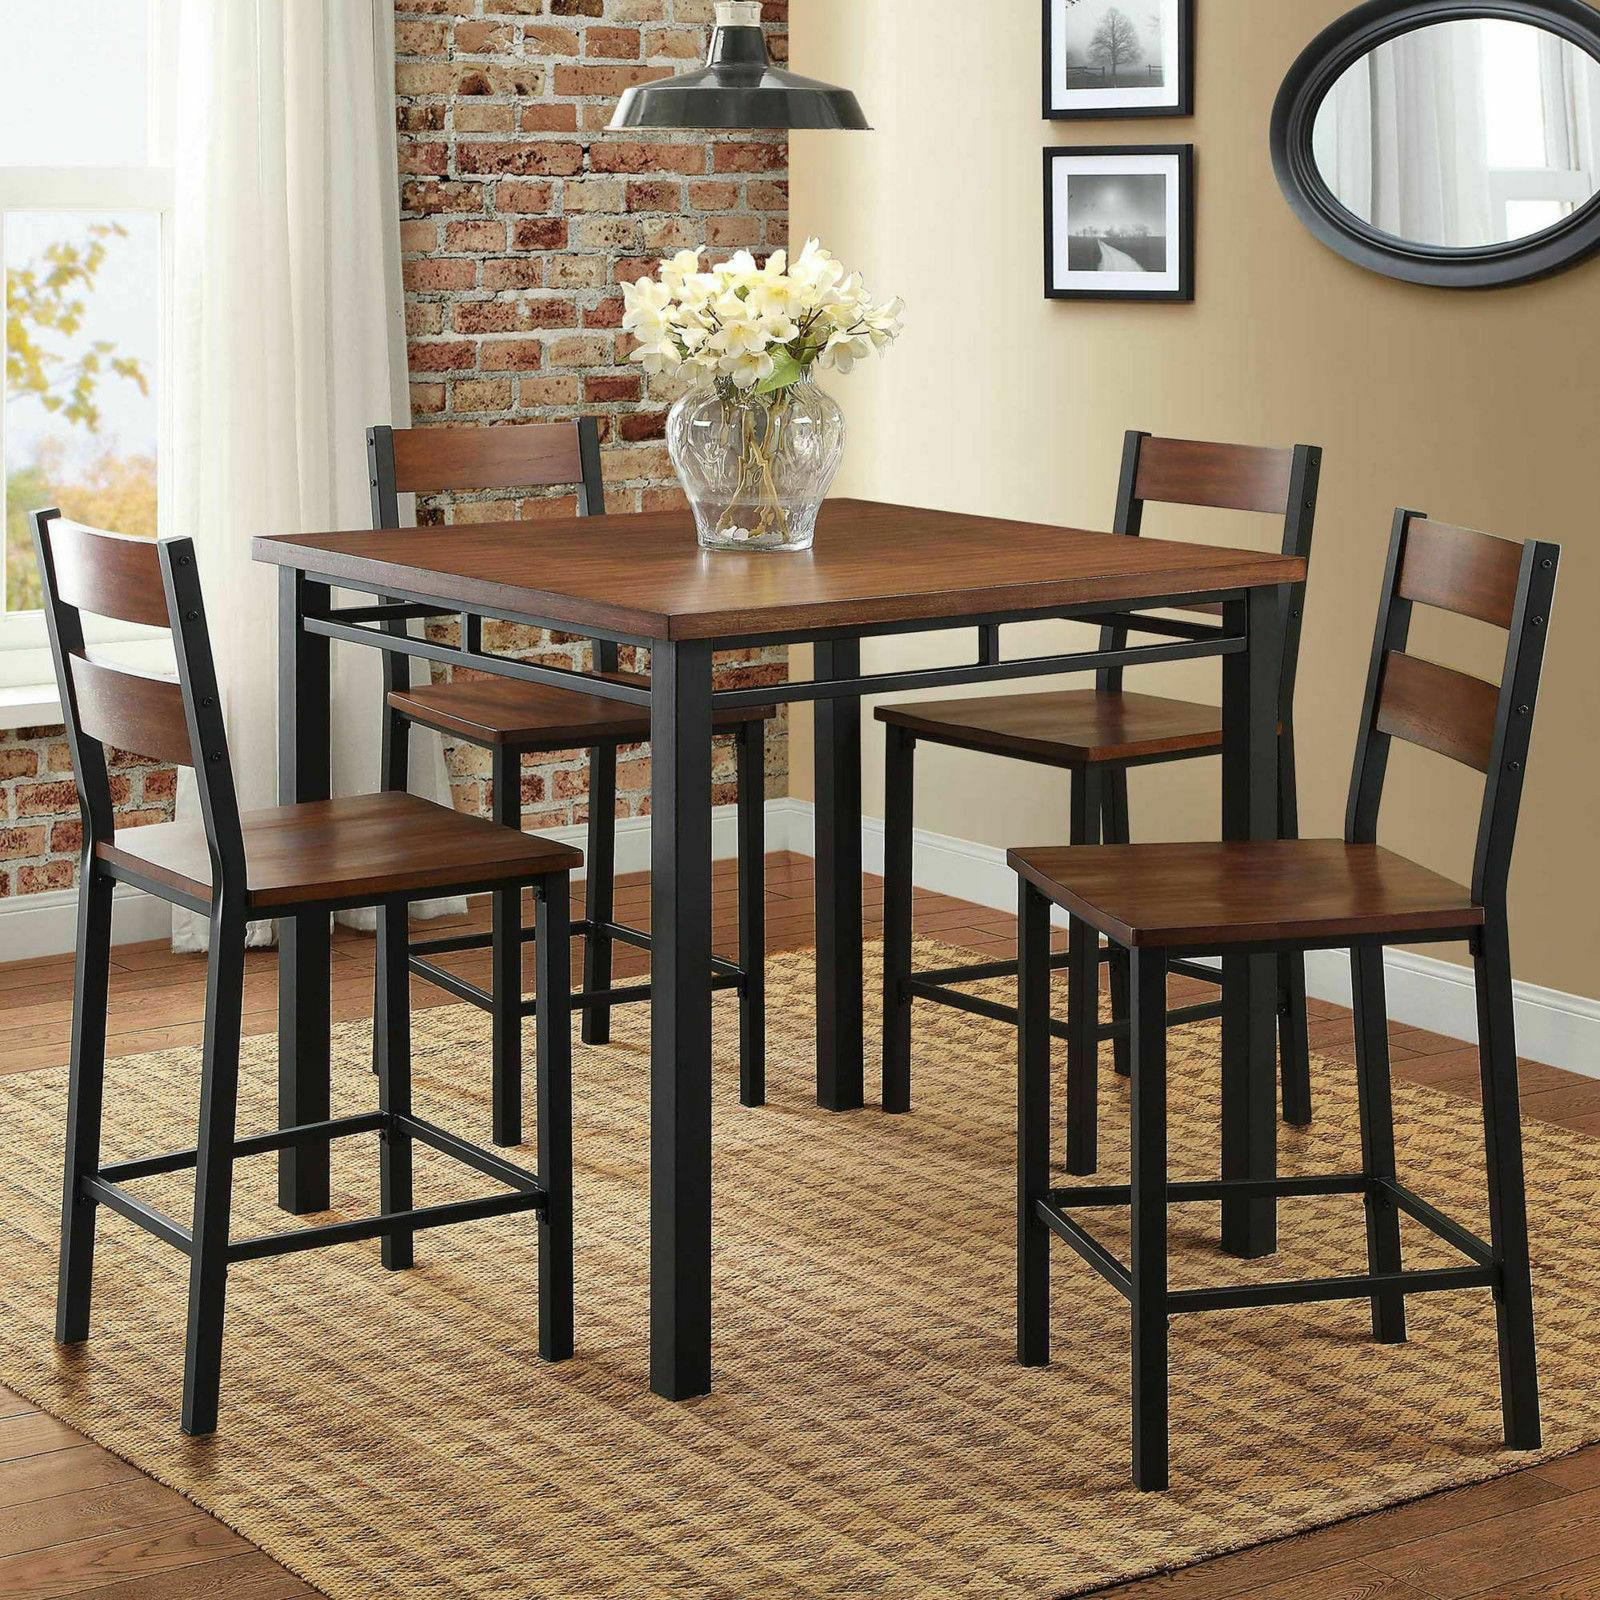 Dining Set Counter Height Table 5 Piece Regarding Latest Noyes 5 Piece Dining Sets (View 17 of 20)